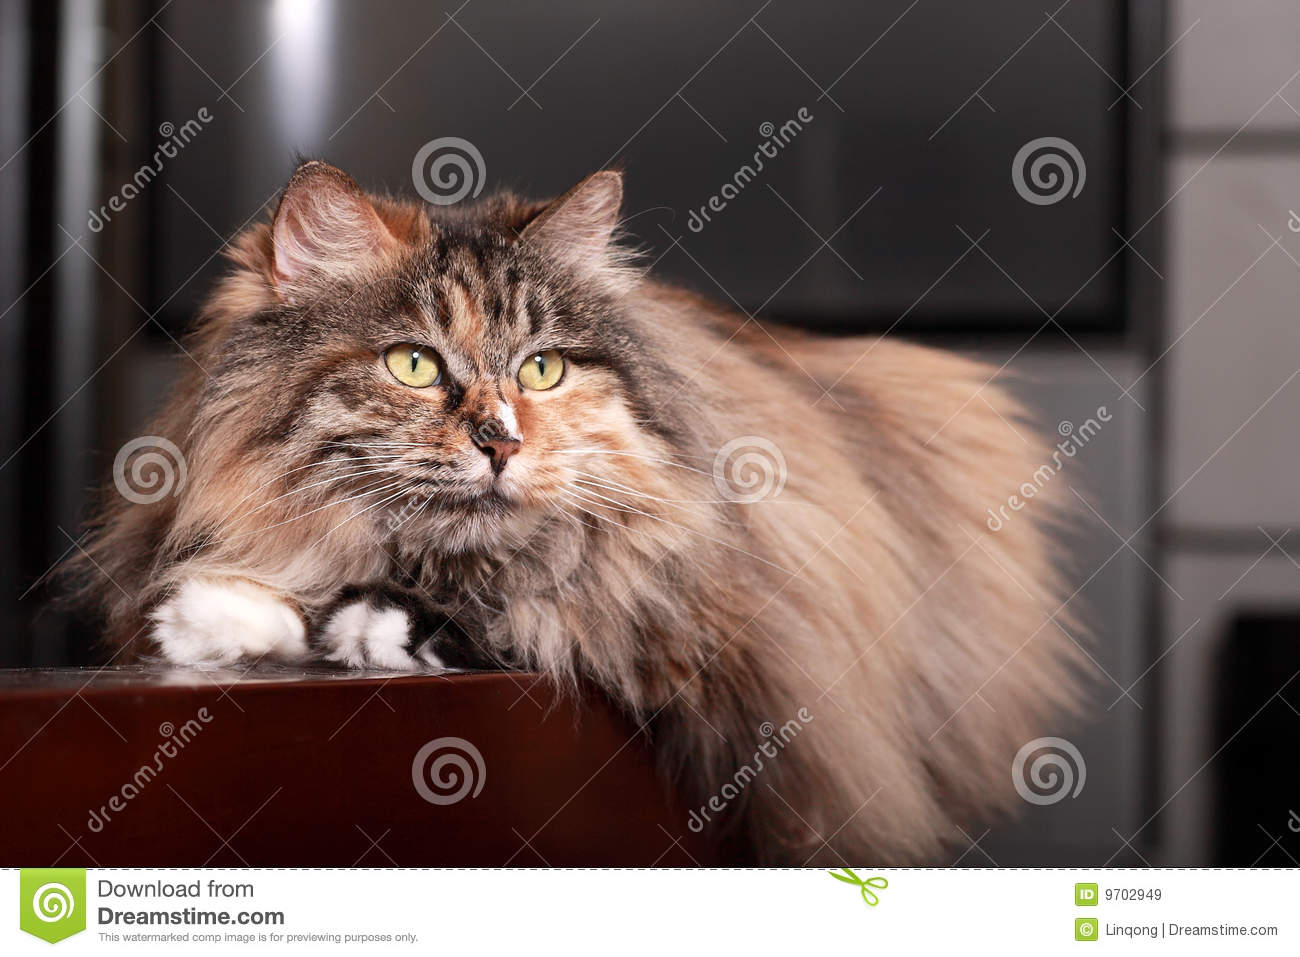 Cute cat royalty free stock images image 9702949 for Having an indoor cat